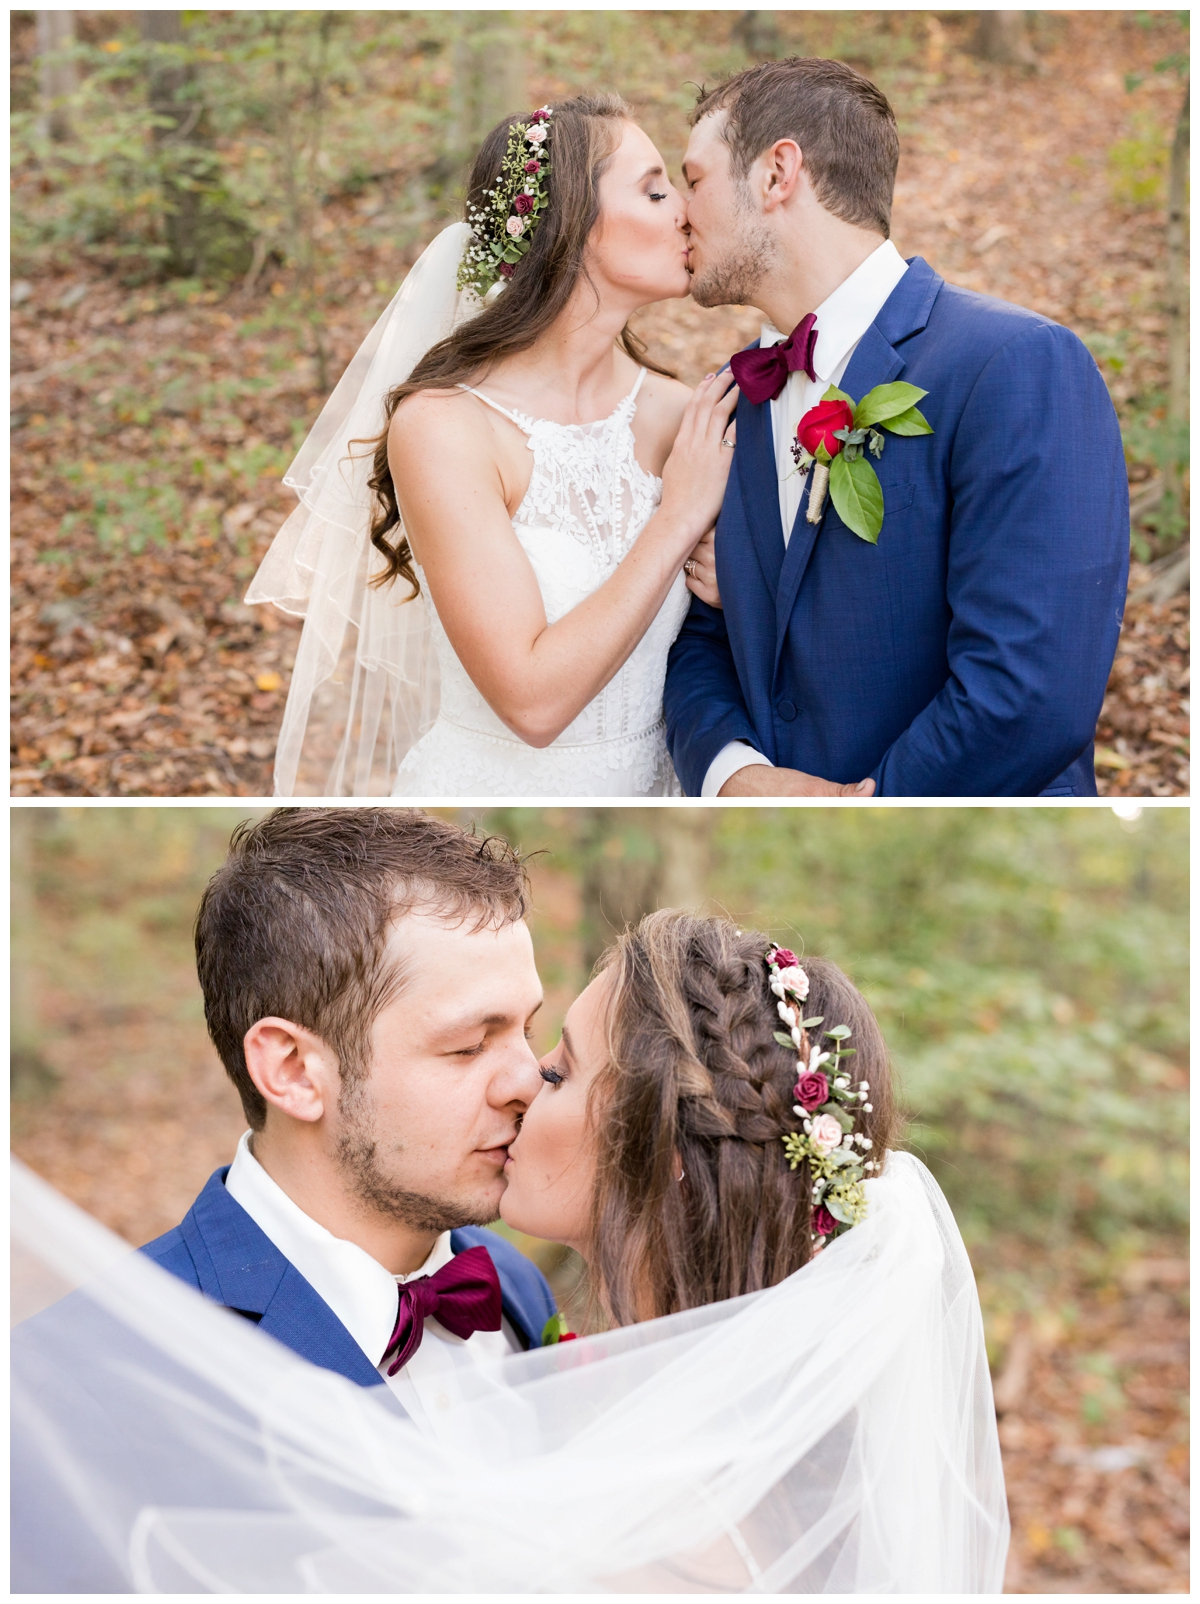 Bride and Groom portraits at a shabby chic outdoor rustic wedding in the woods